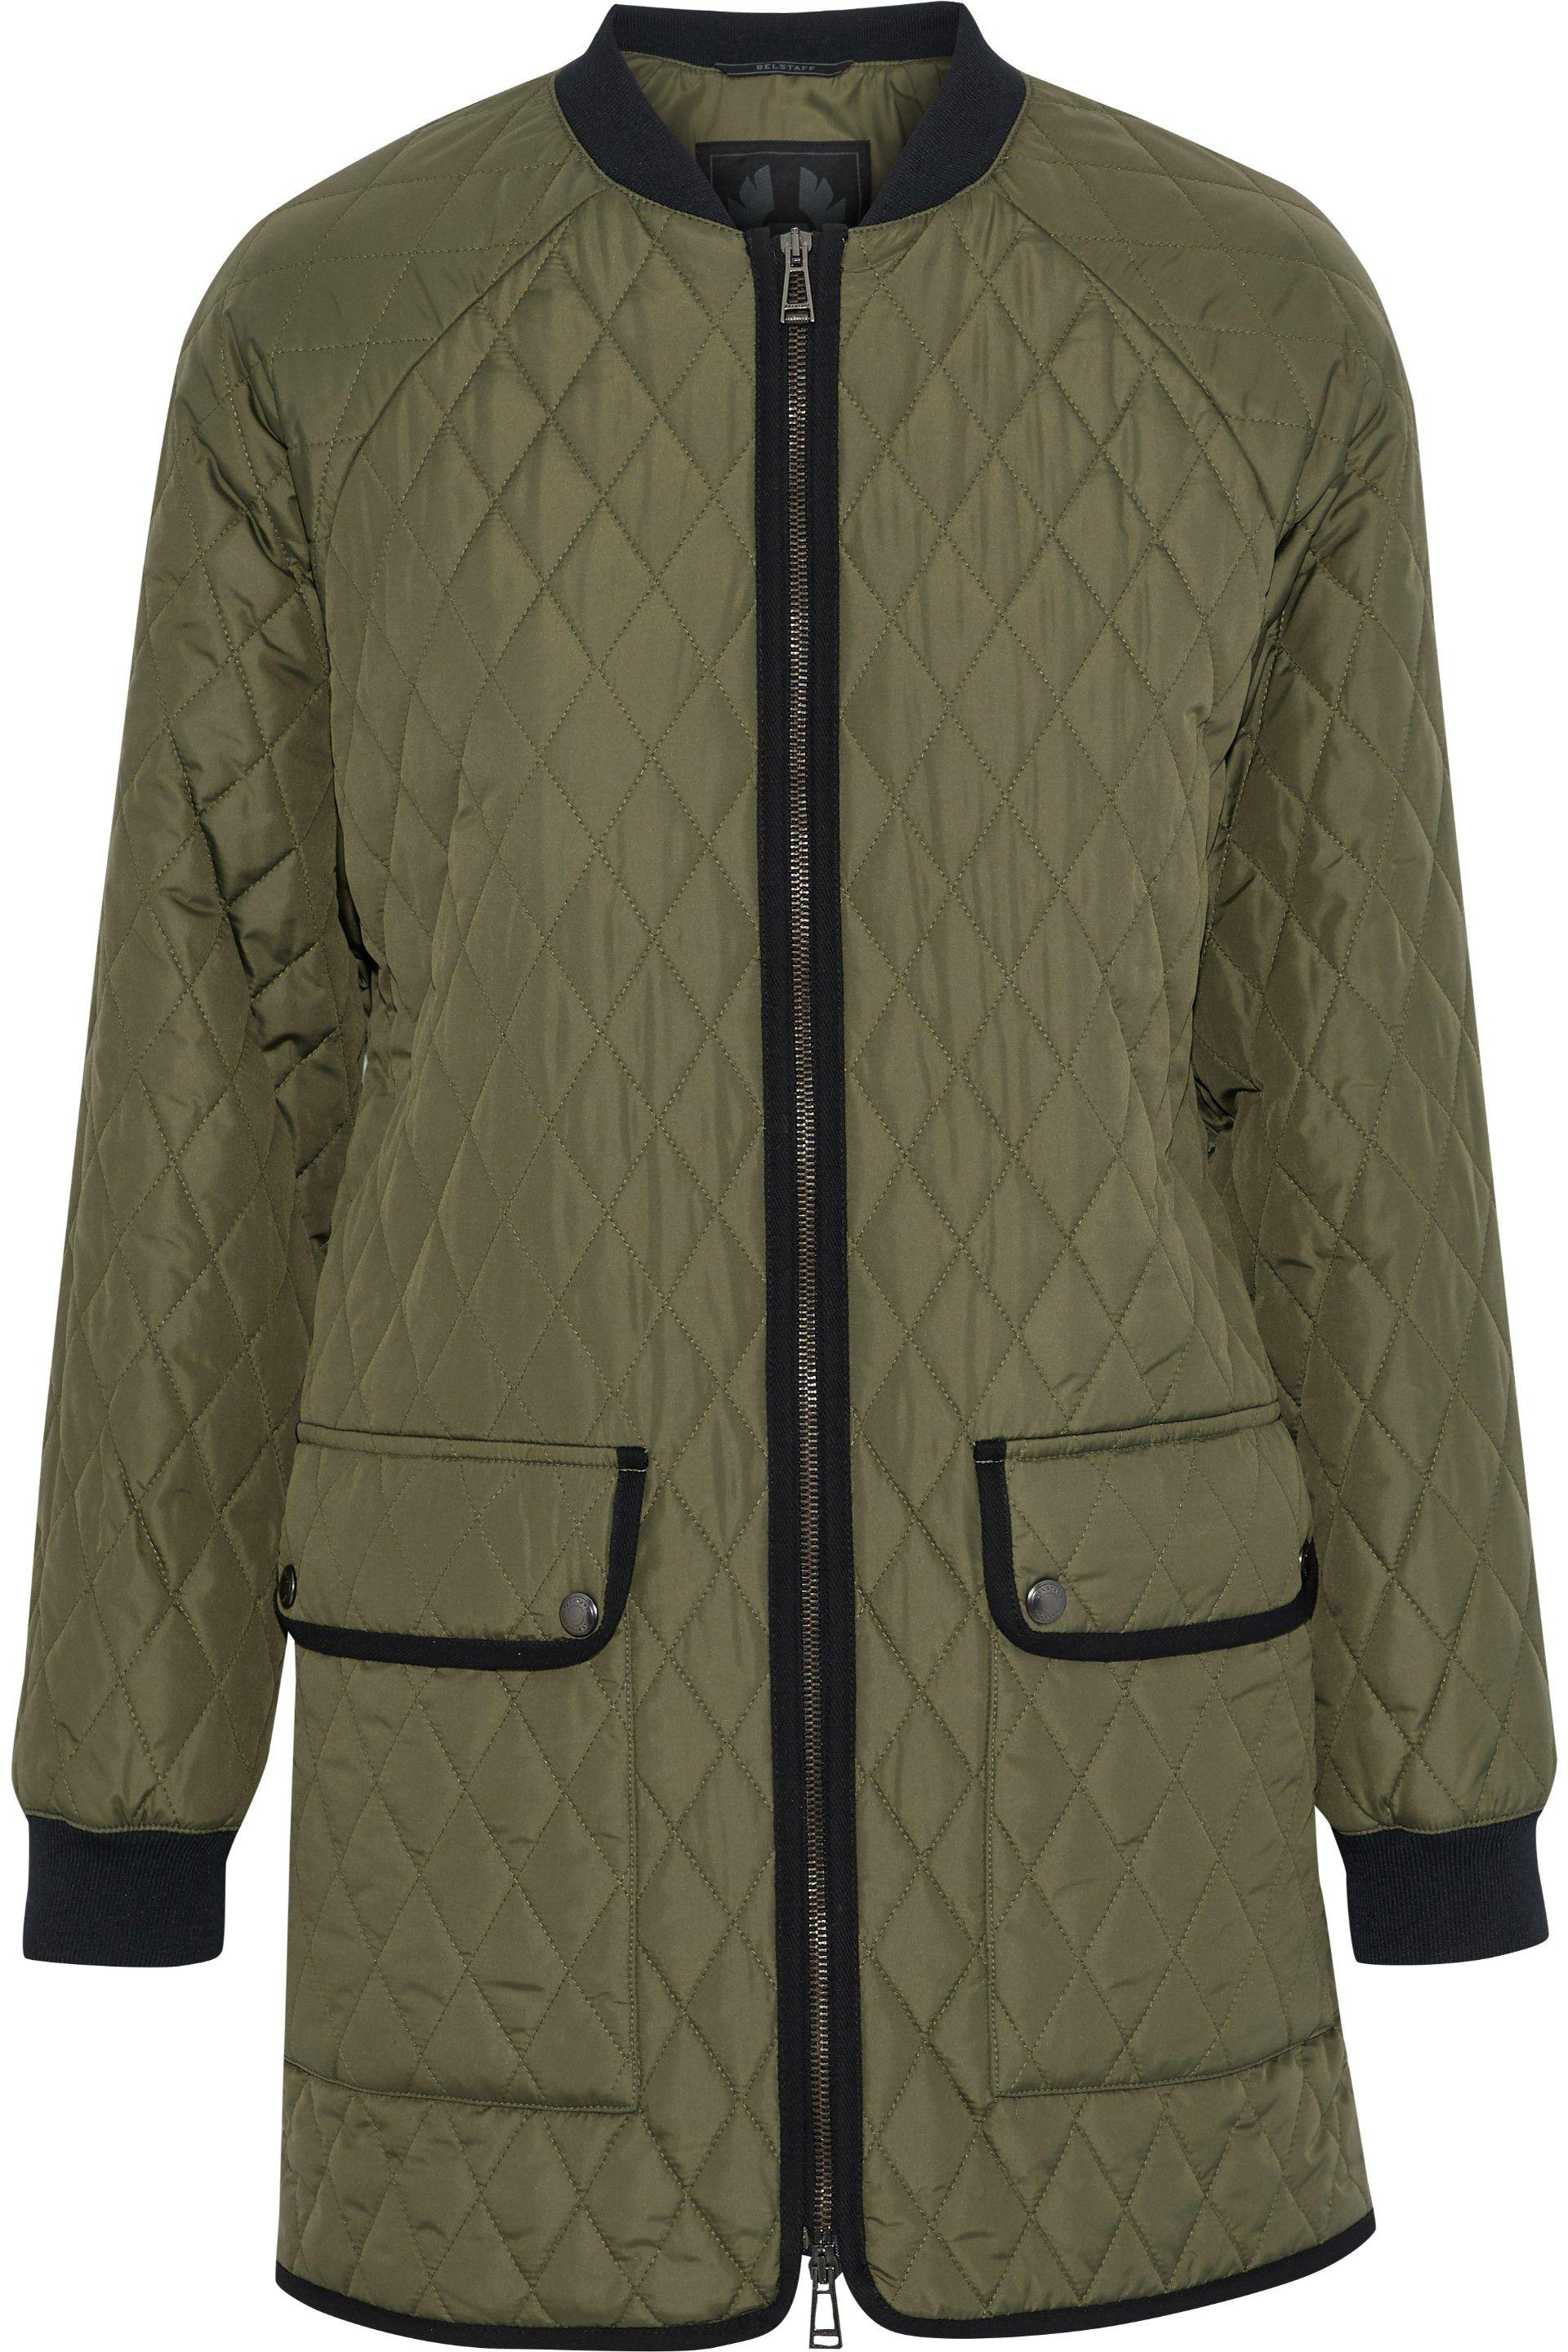 585c79614 Lyst - Belstaff Woman Rackham Quilted Shell Jacket Army Green in Green